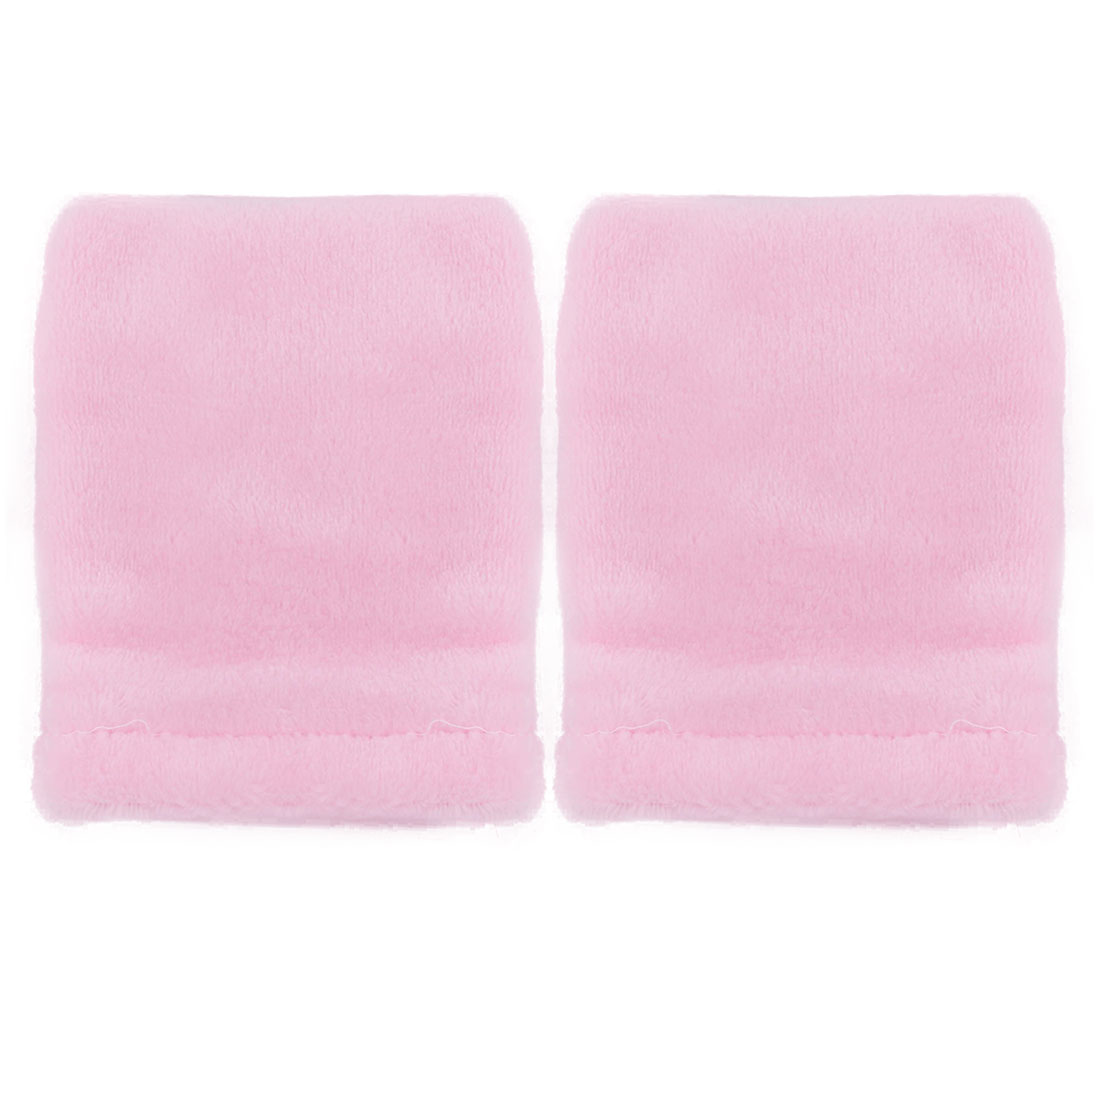 Home Coral Fleece Shoes Dust Remover Cleaner Washing Cleaning Mitt Glove Pink 2pcs